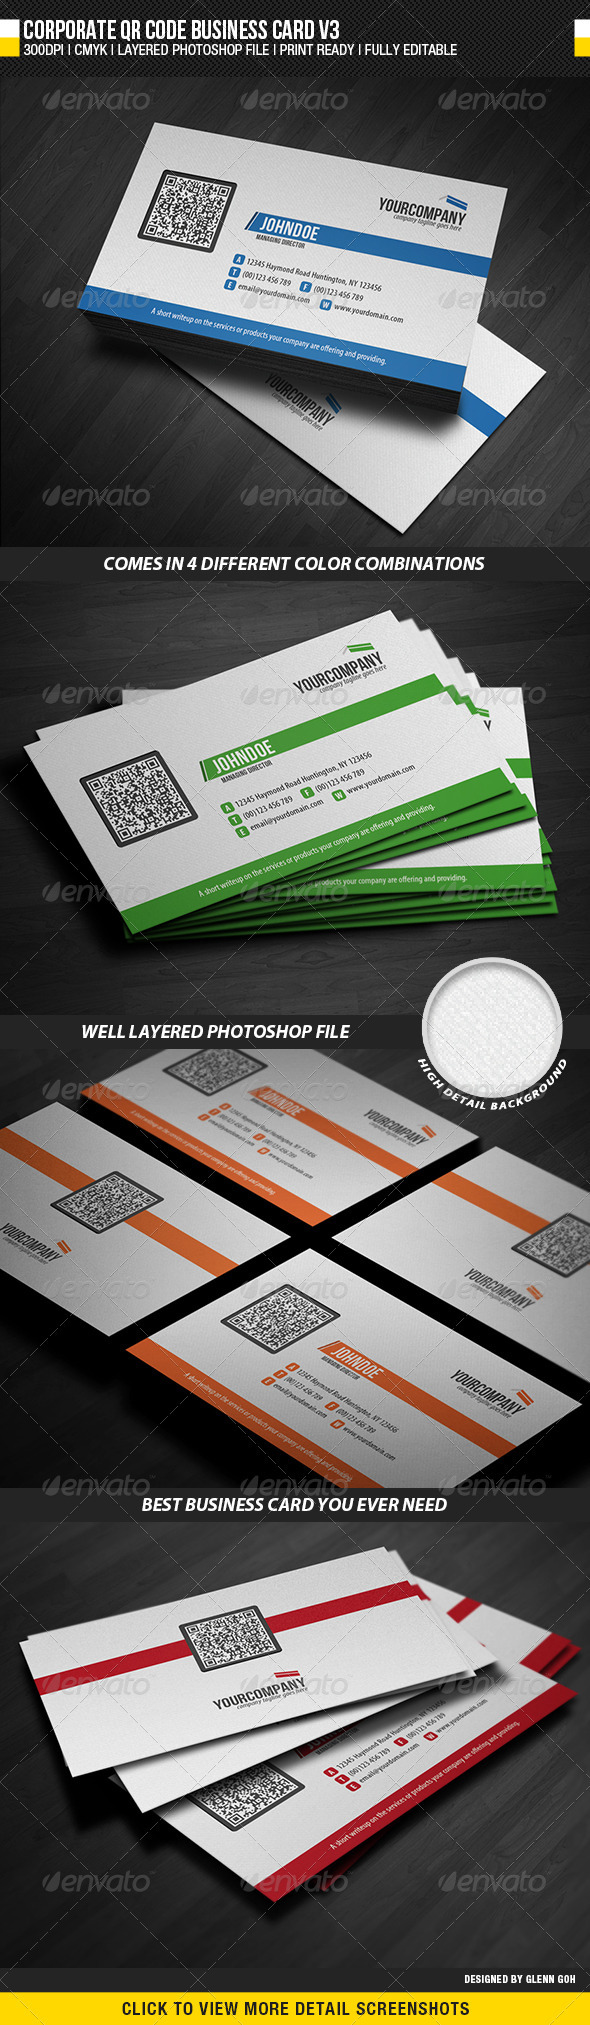 Corporate QR Code Business Card V3 - Corporate Business Cards